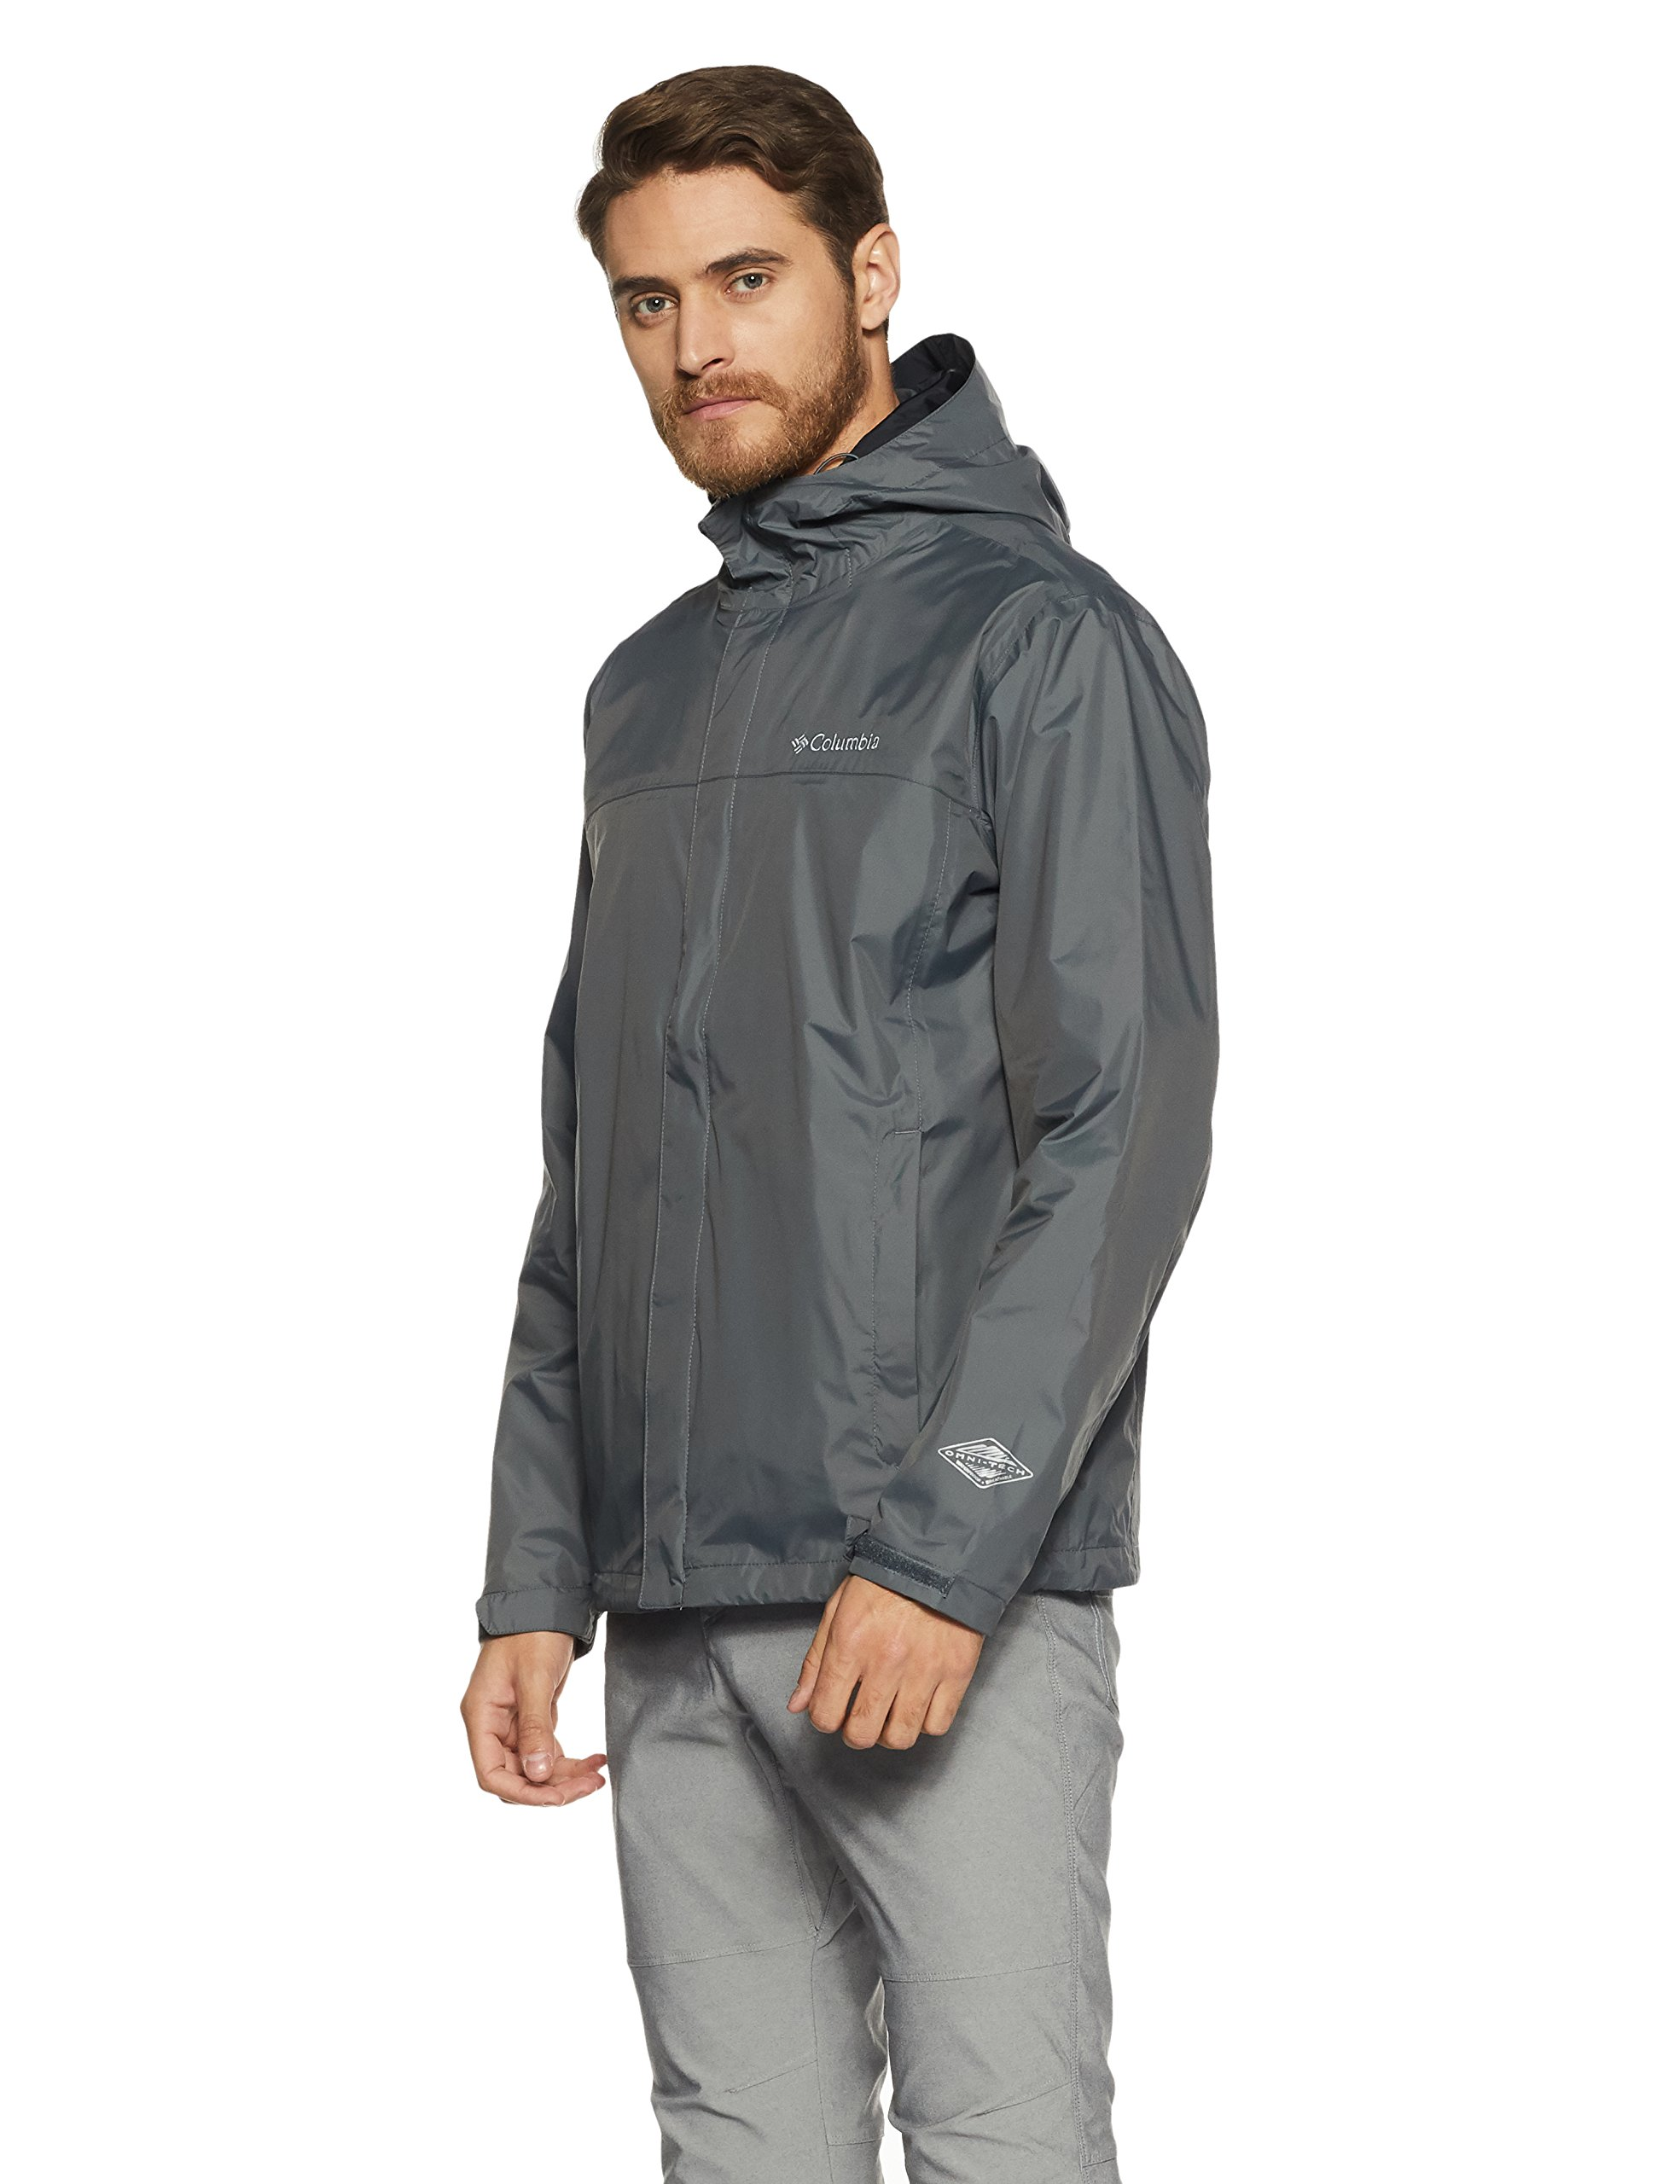 6370e868f6fa Galleon - Columbia Men s Watertight II Rain Jacket